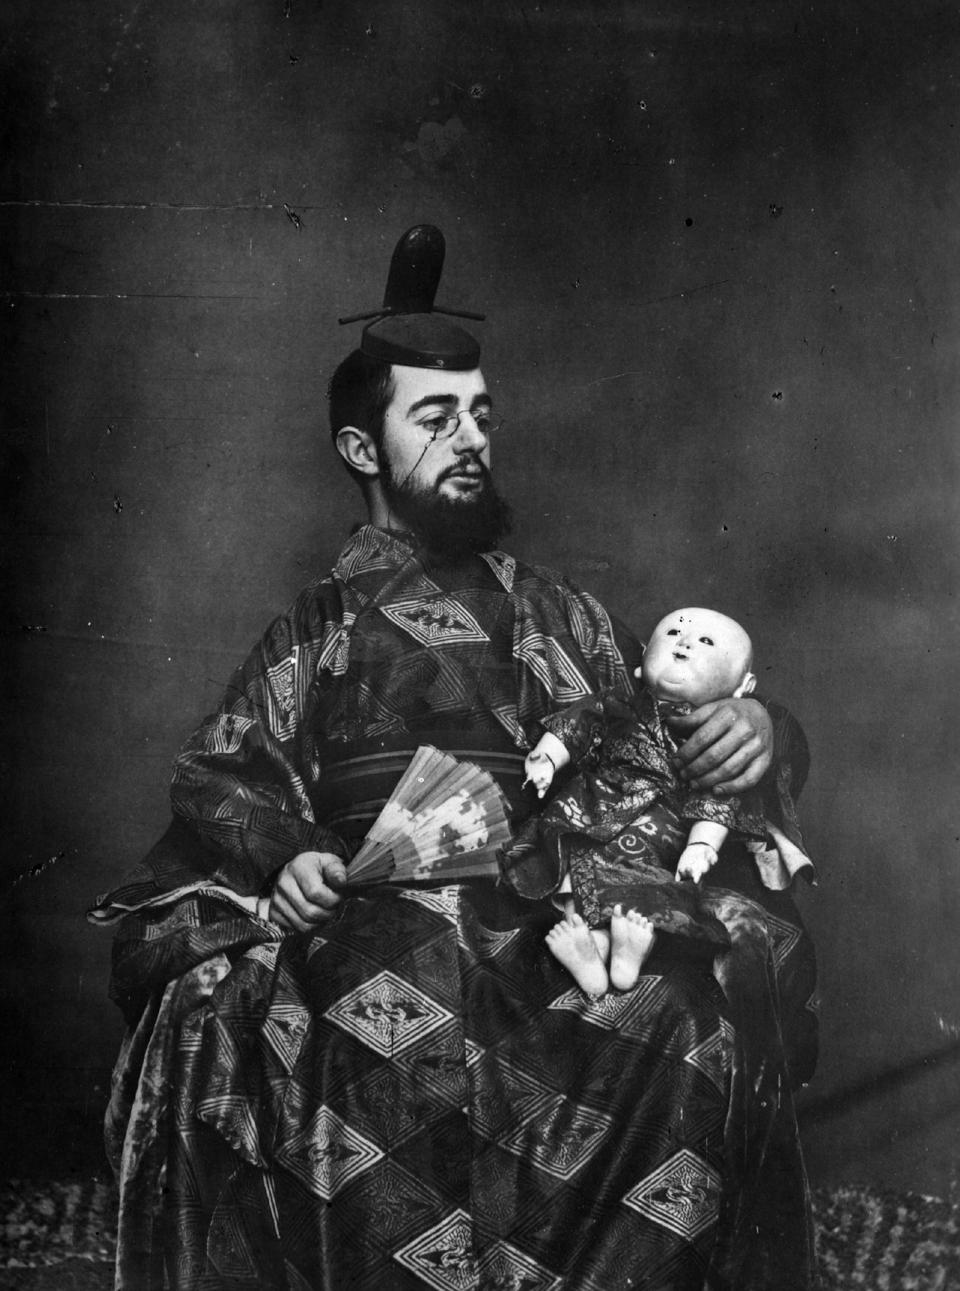 French painter Toulouse-Lautrec wearing Japanese fancy-dress costume and carrying a doll.